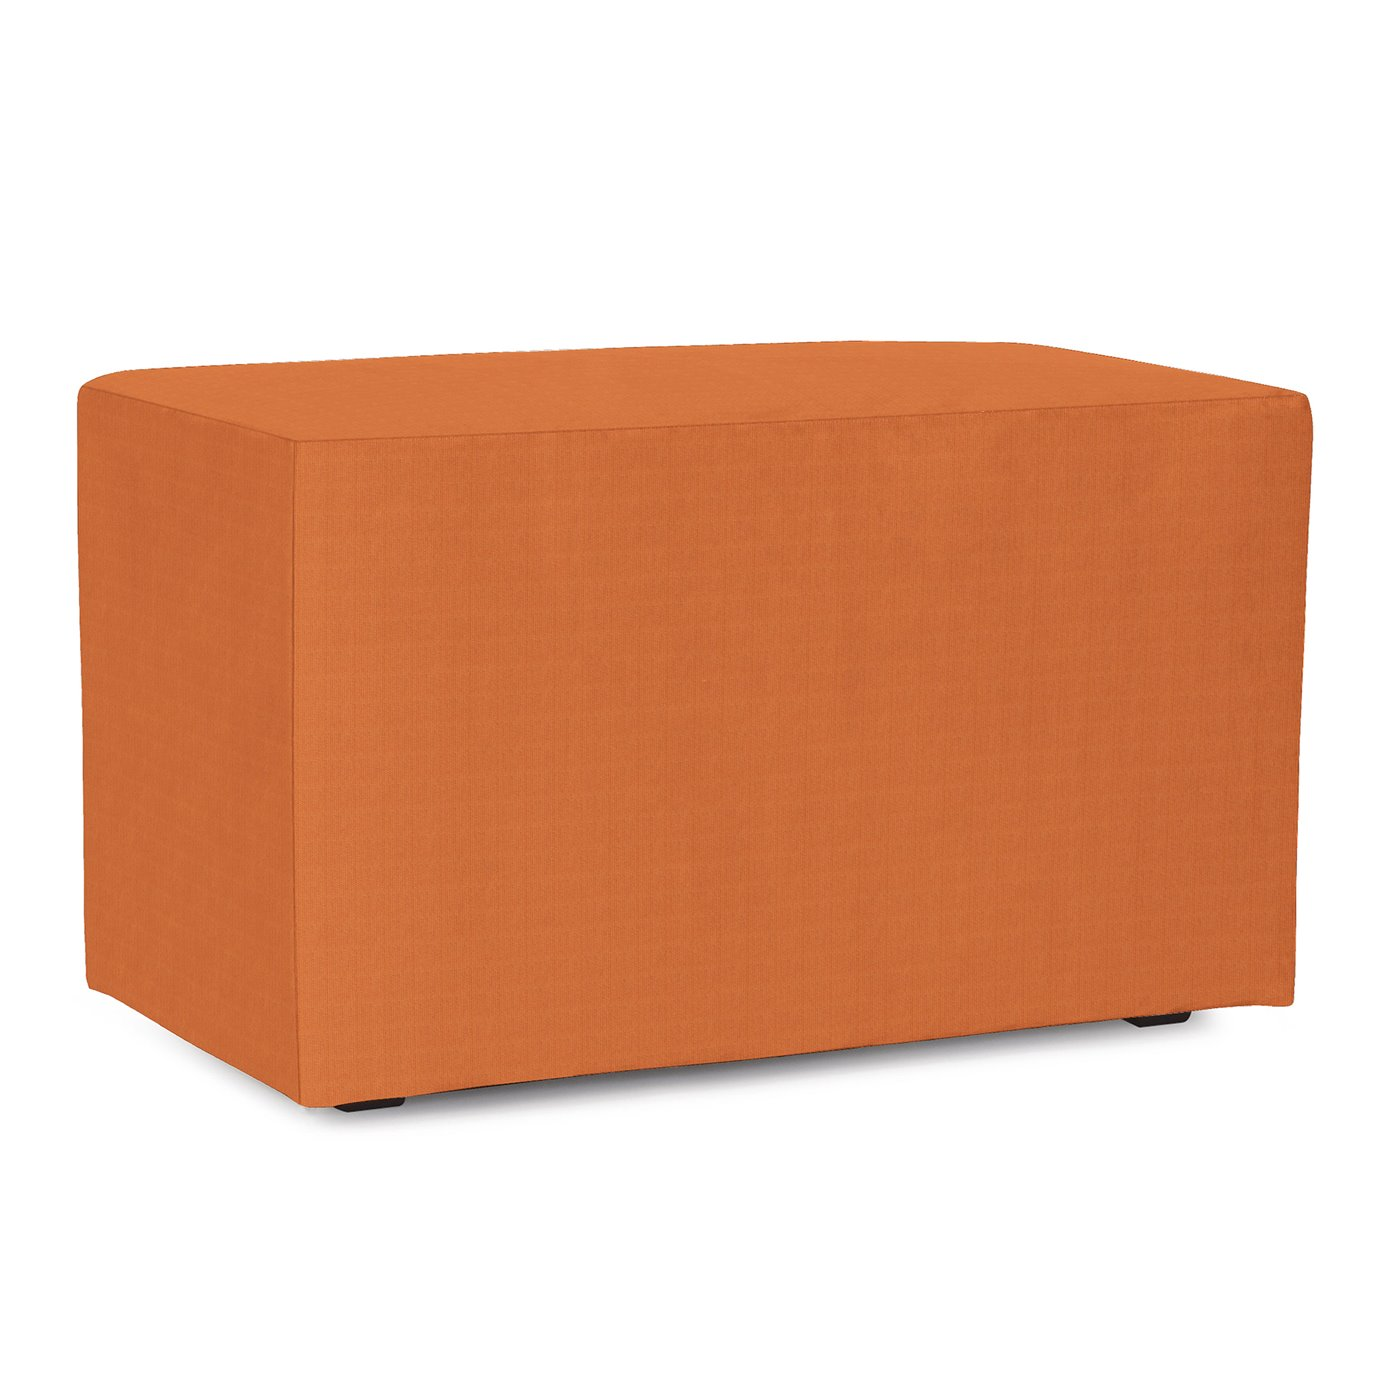 Howard Elliott Universal Bench Cover Sunbrella Outdoor Seascape Canyon - Cover Only, Base Not Included